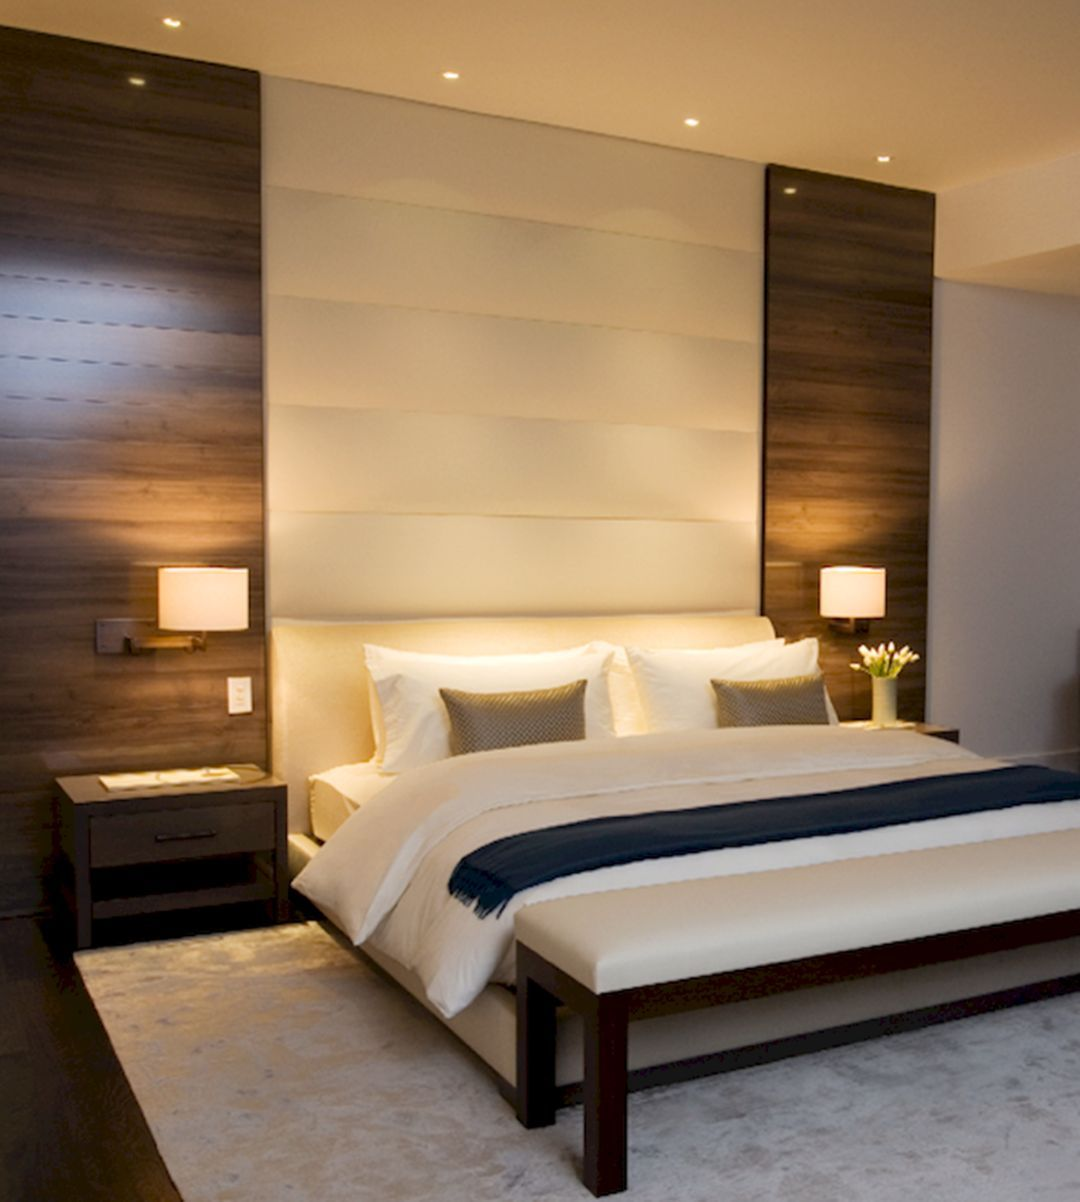 Great Idea 25 Gorgeous Modern Small Master Bedroom Designs You Never Seen Before Https Dexorate Master Bedroom Interior Remodel Bedroom Small Master Bedroom